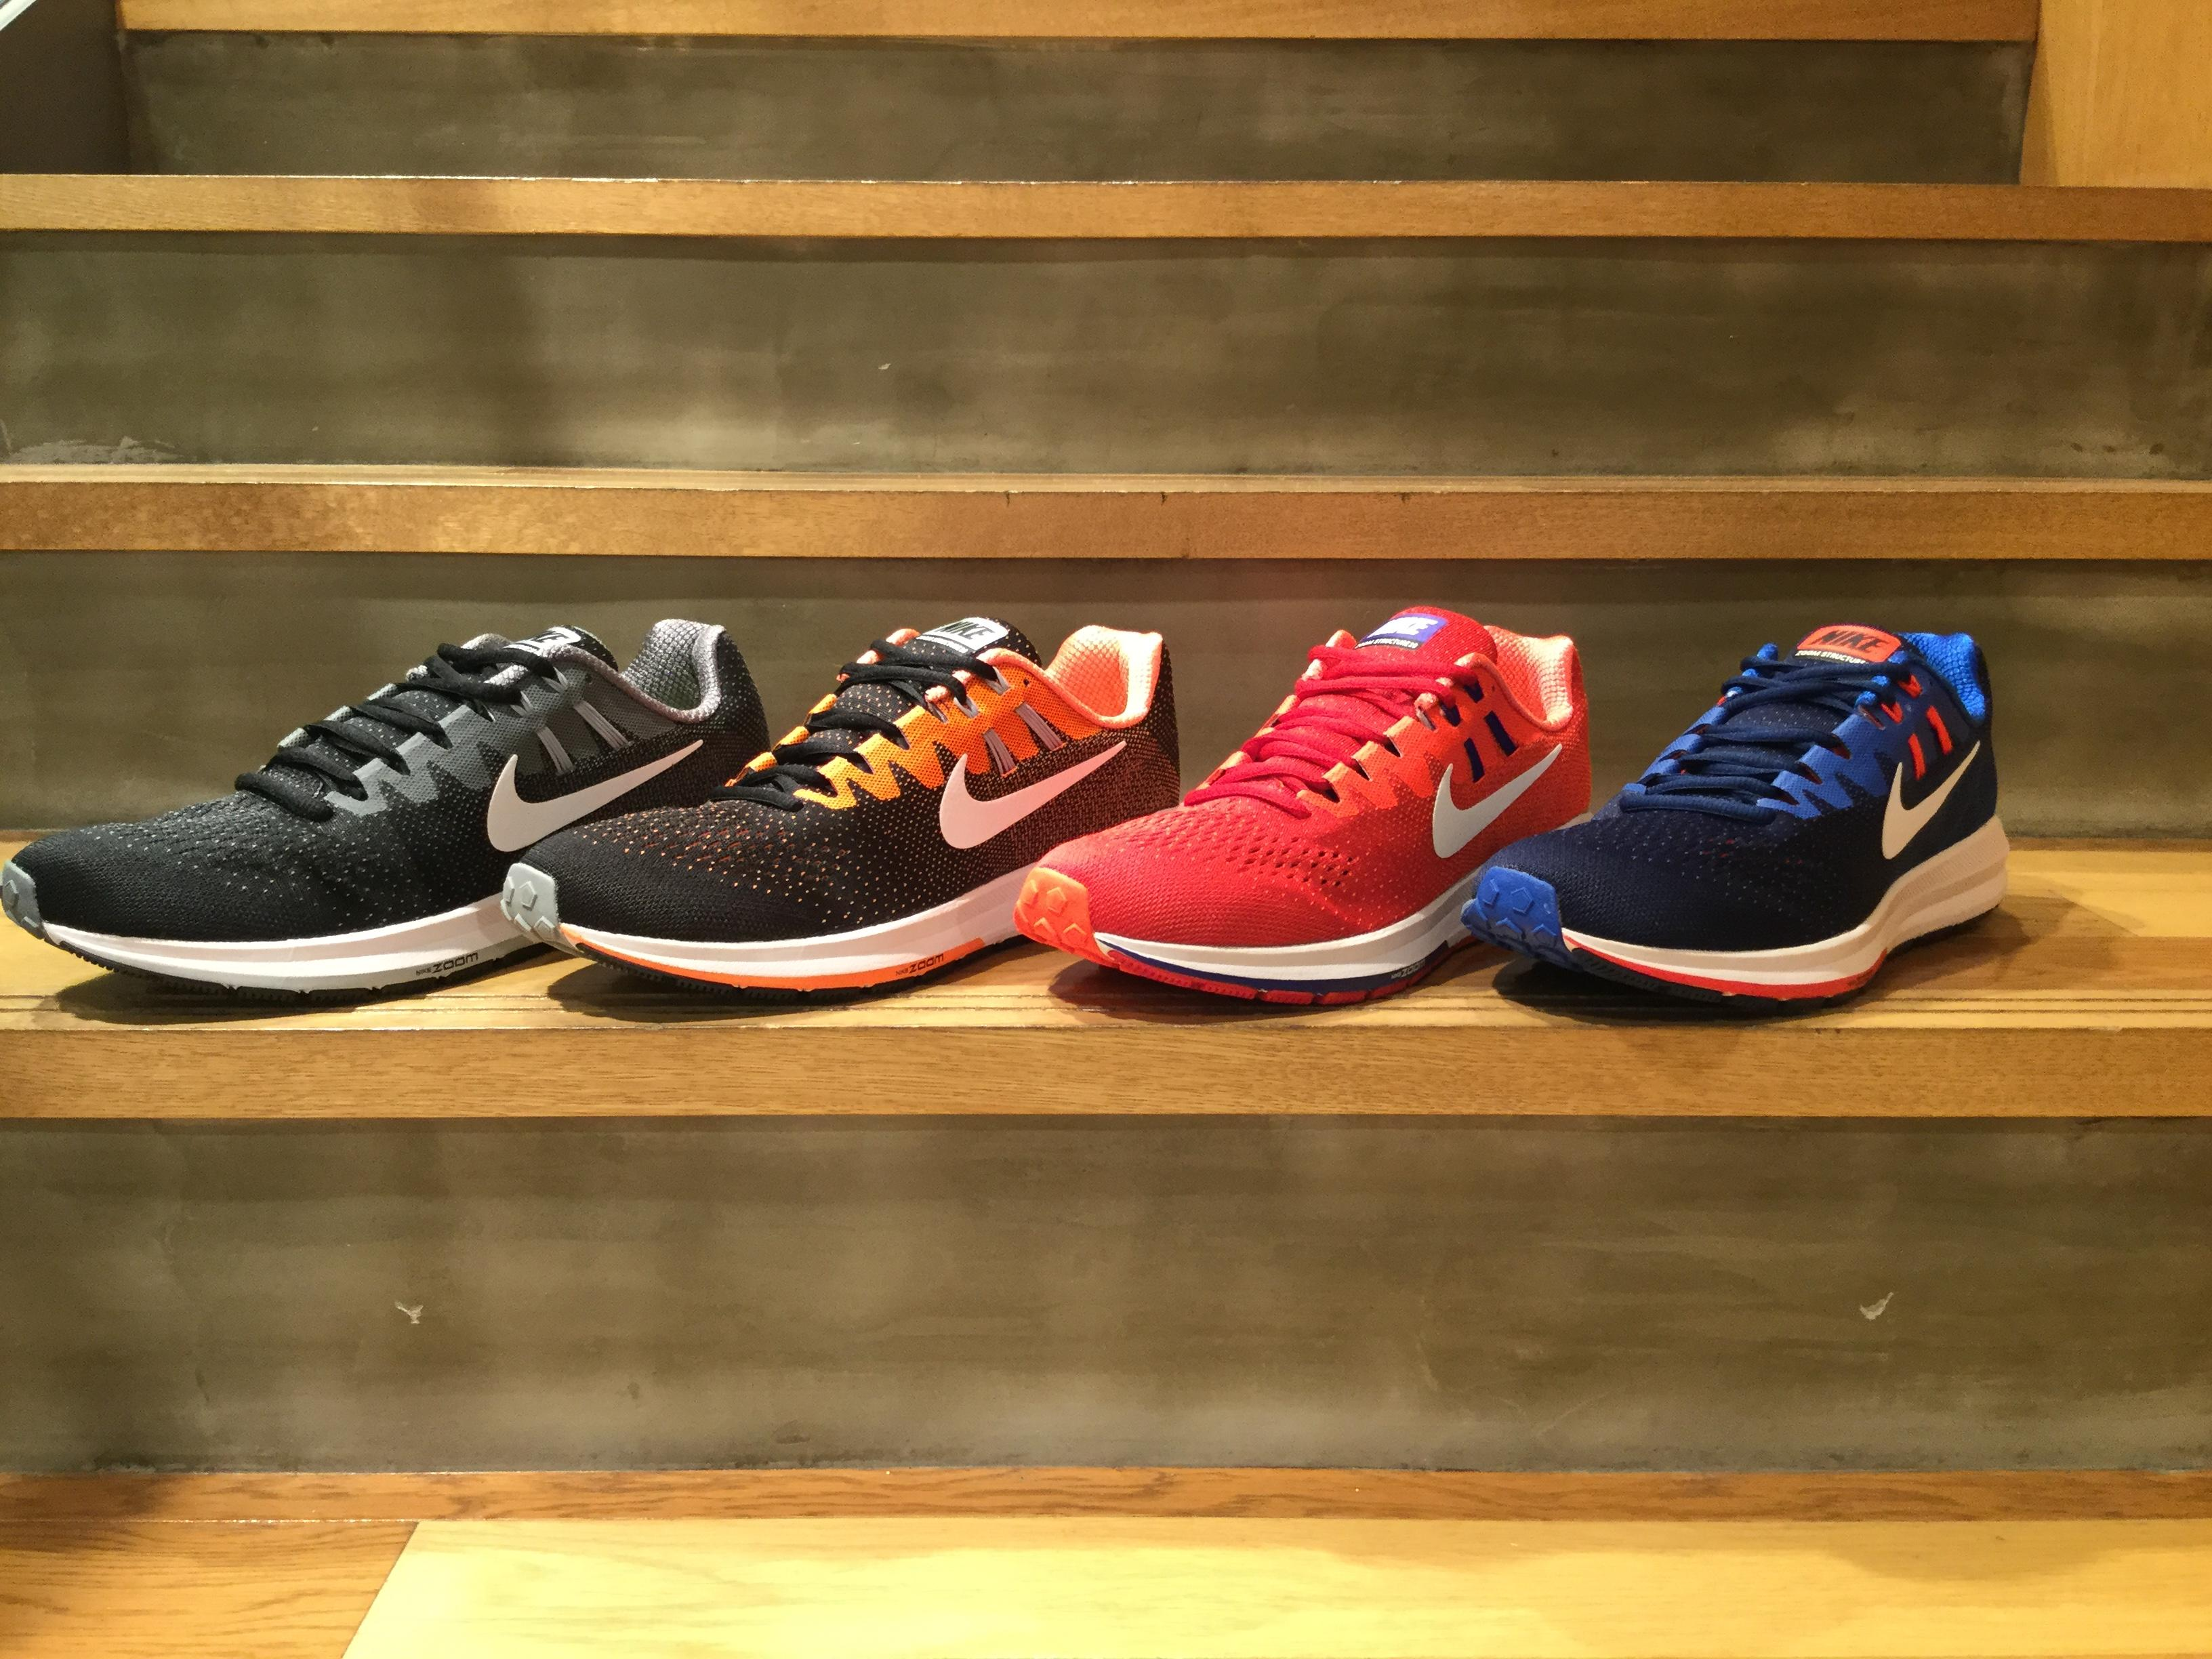 reputable site 8dd5b 73904 NIKE AIR ZOOM STRUCTURE 20 849576−003,002,600,400 ¥14,040-(TAX IN)  SIZE 24.5~30㎝ (※600 25~29㎝)